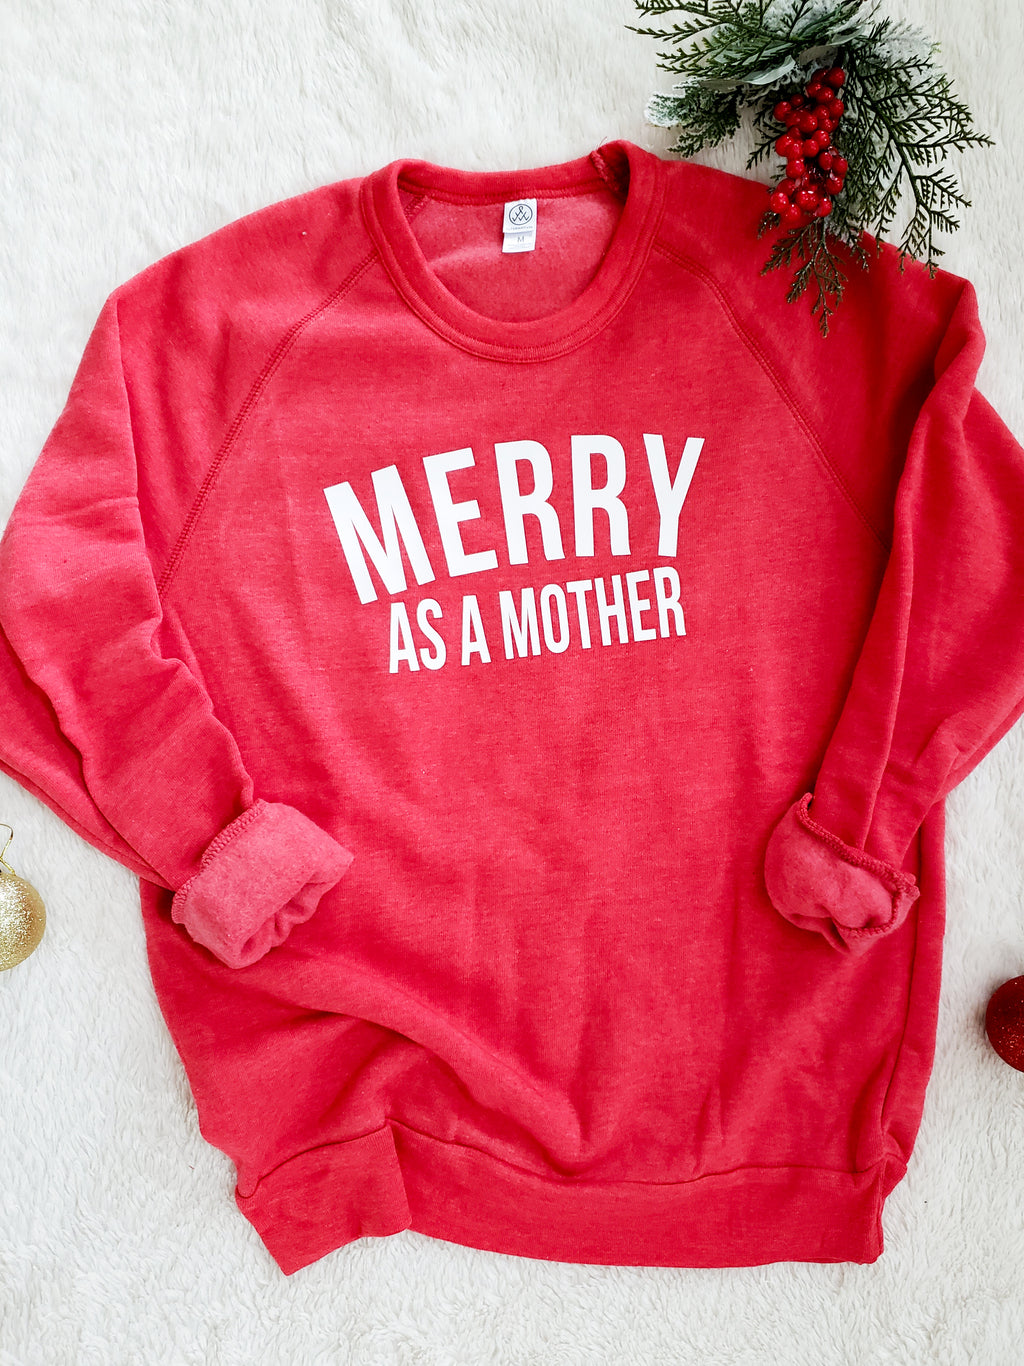 MERRY AS A MOTHER Sweatshirt